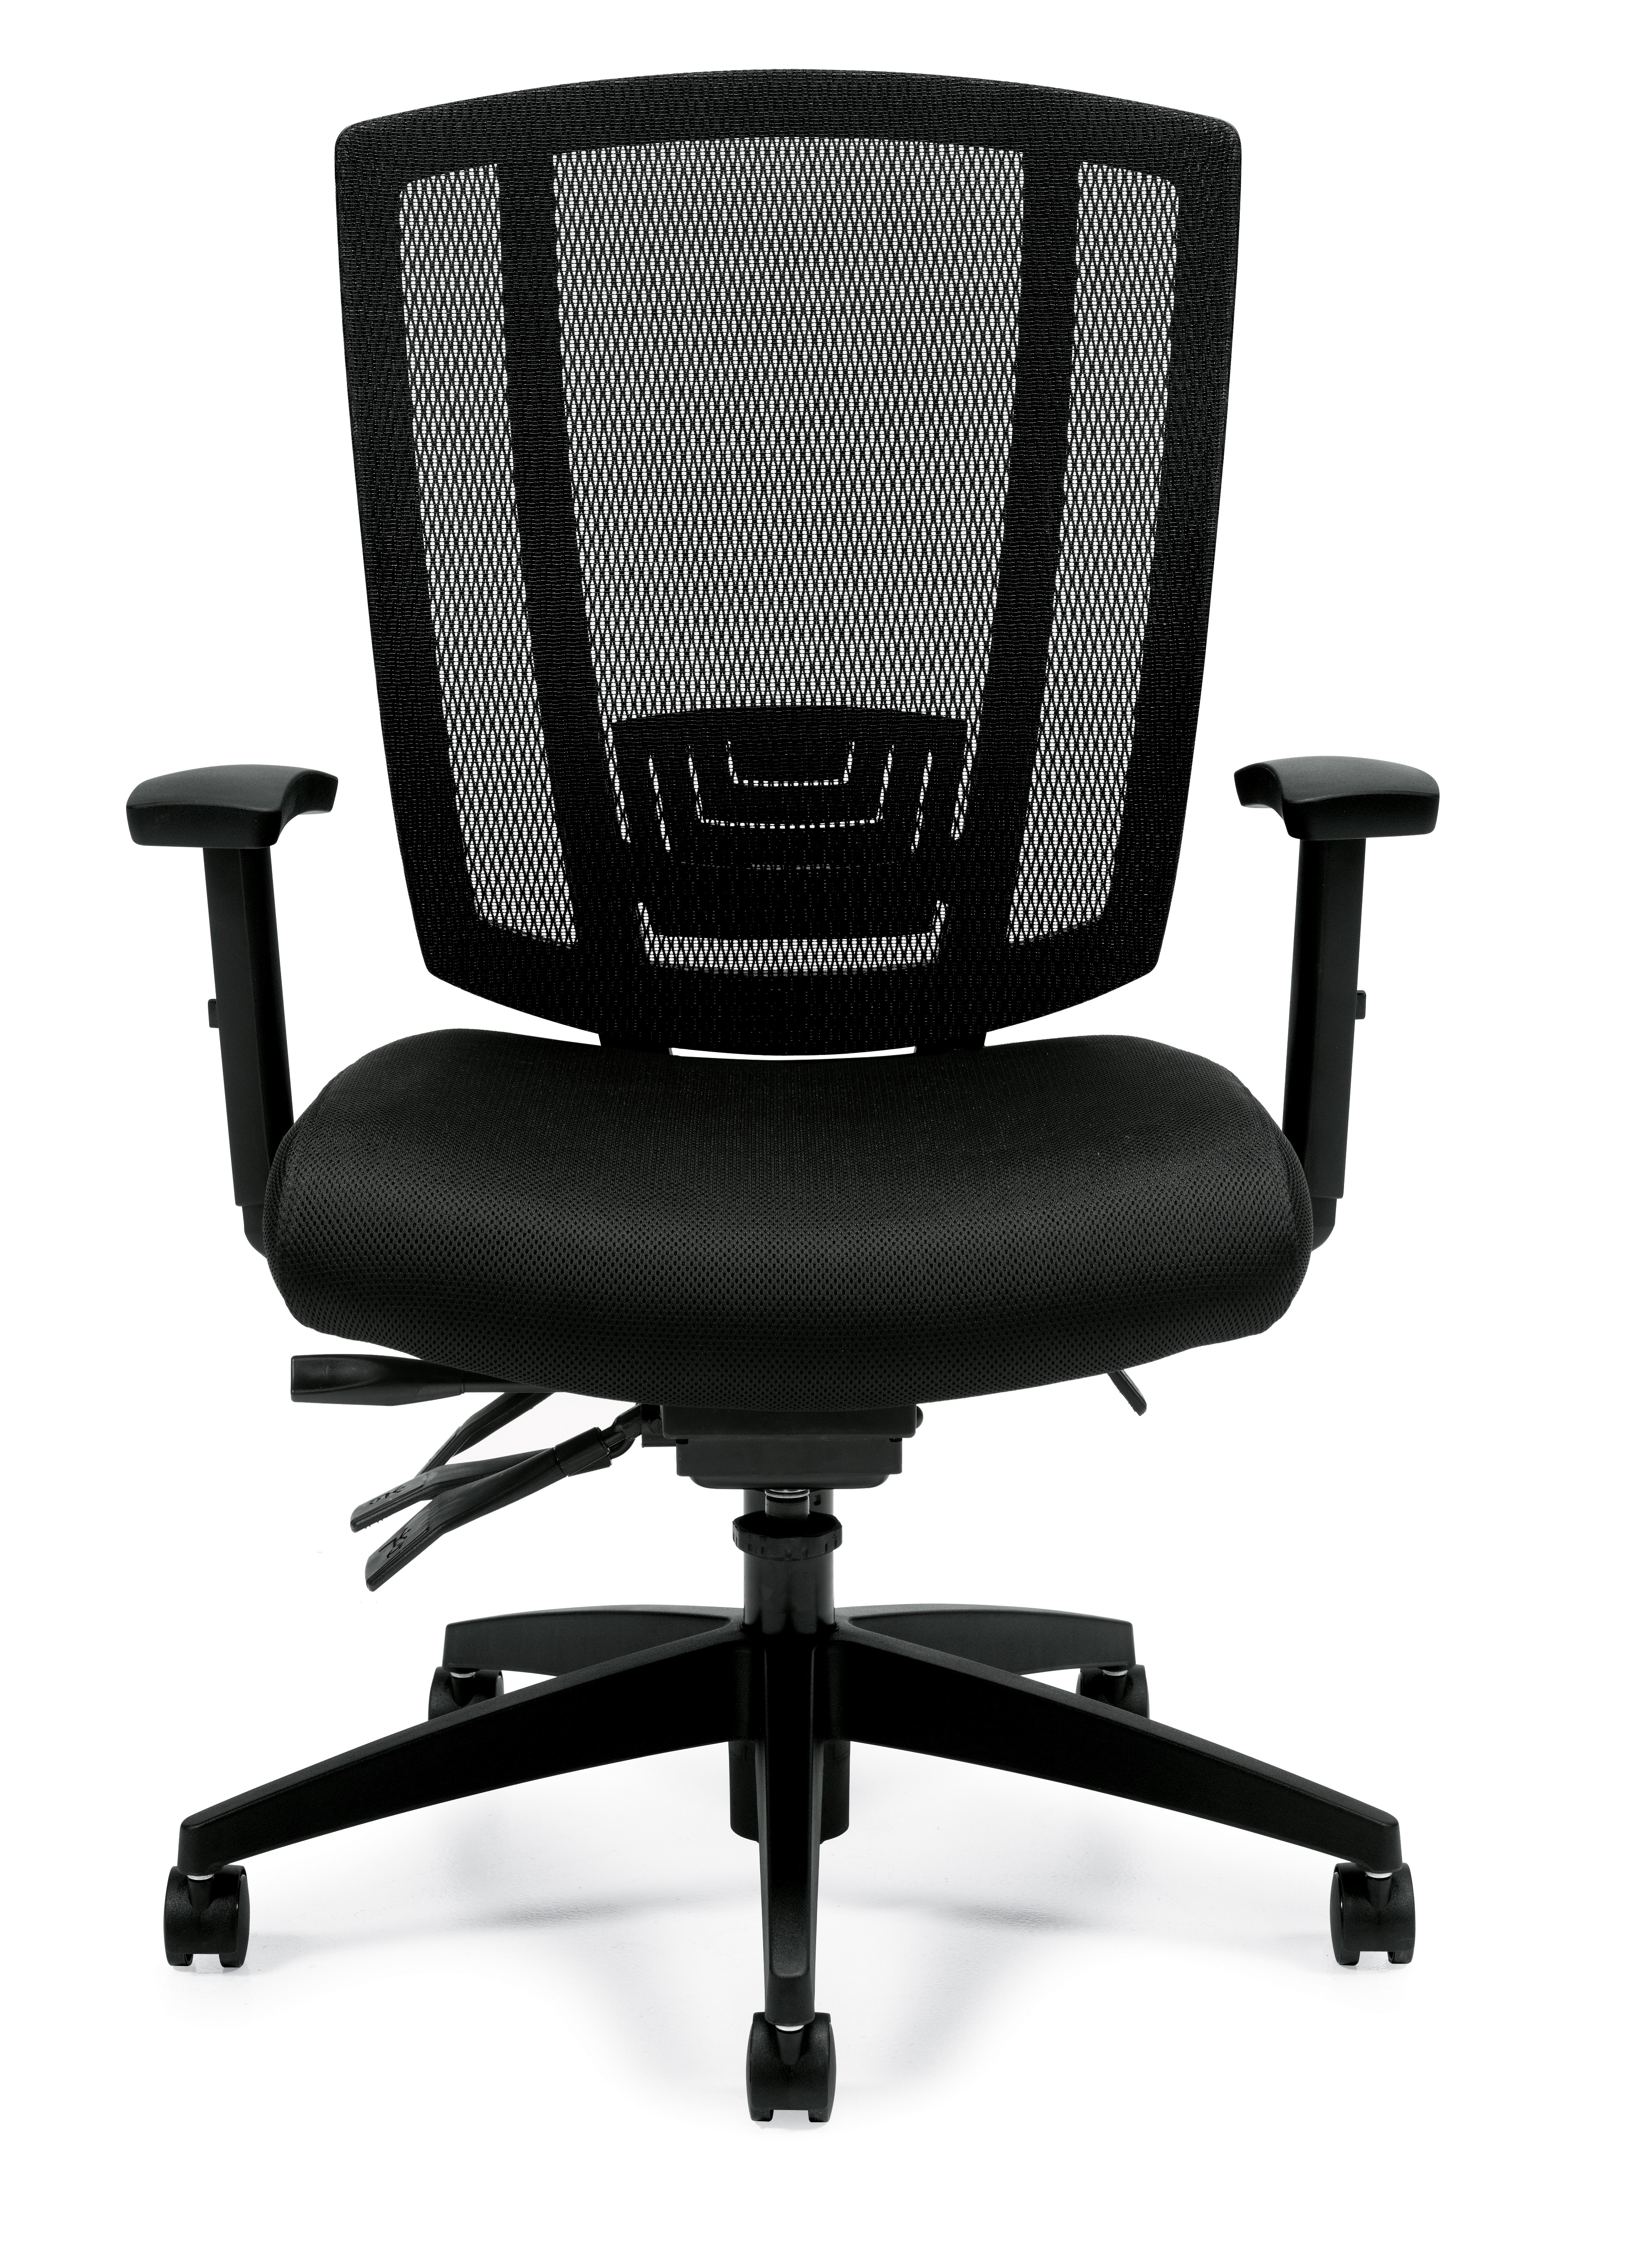 Upholstered Seat and Mesh Back Multi-Function